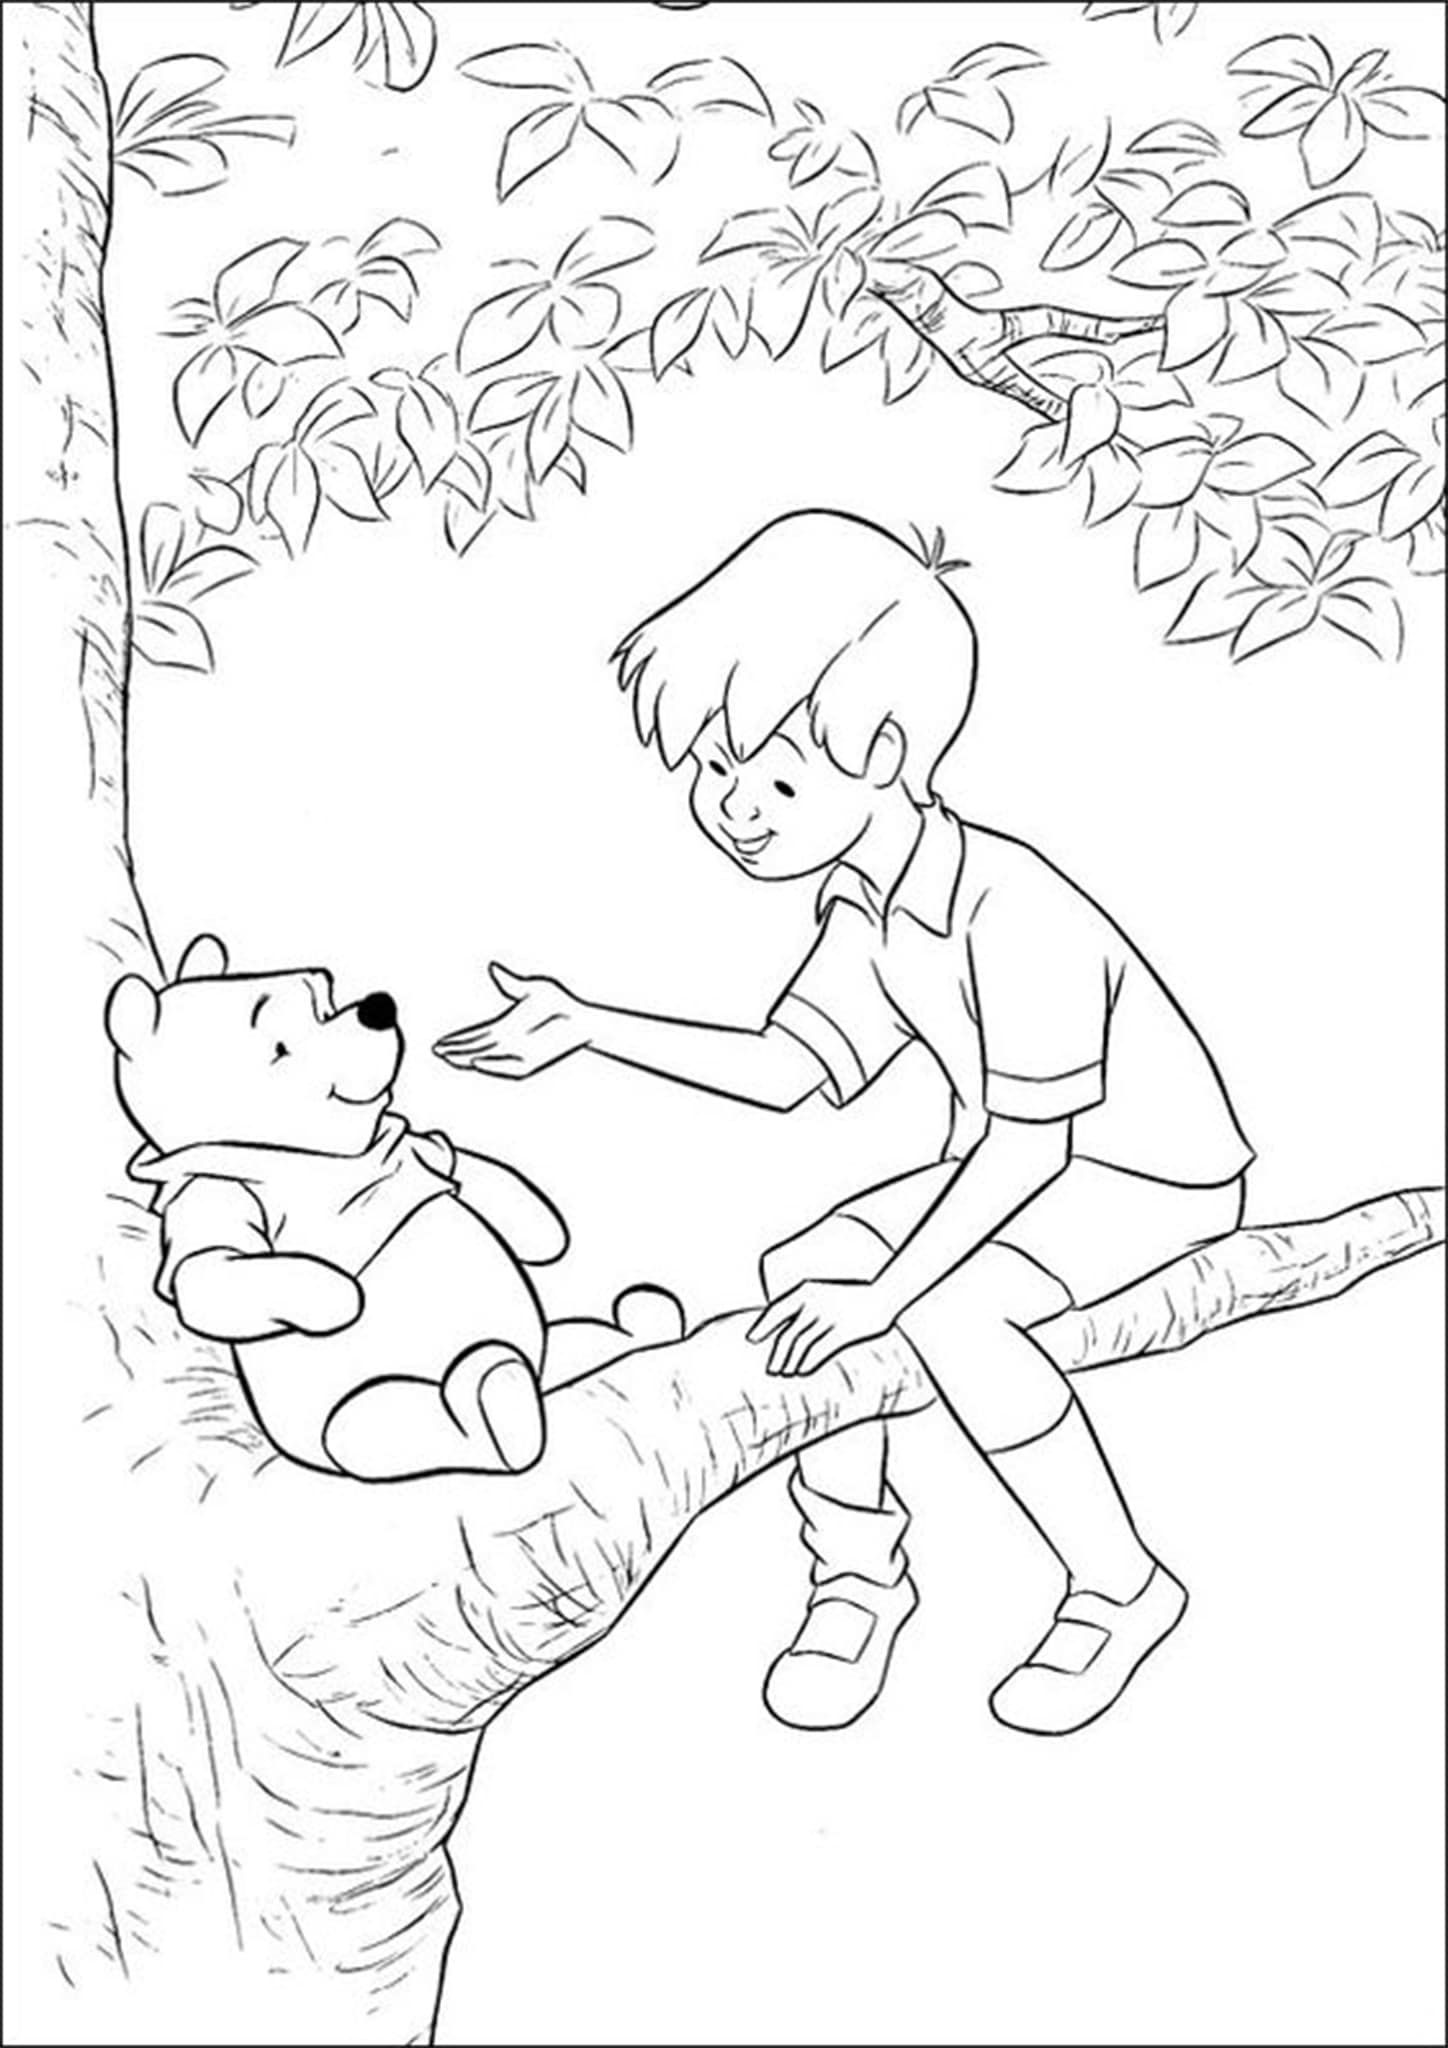 Free Easy To Print Winnie The Pooh Coloring Pages Cartoon Coloring Pages Disney Coloring Pages Bear Coloring Pages